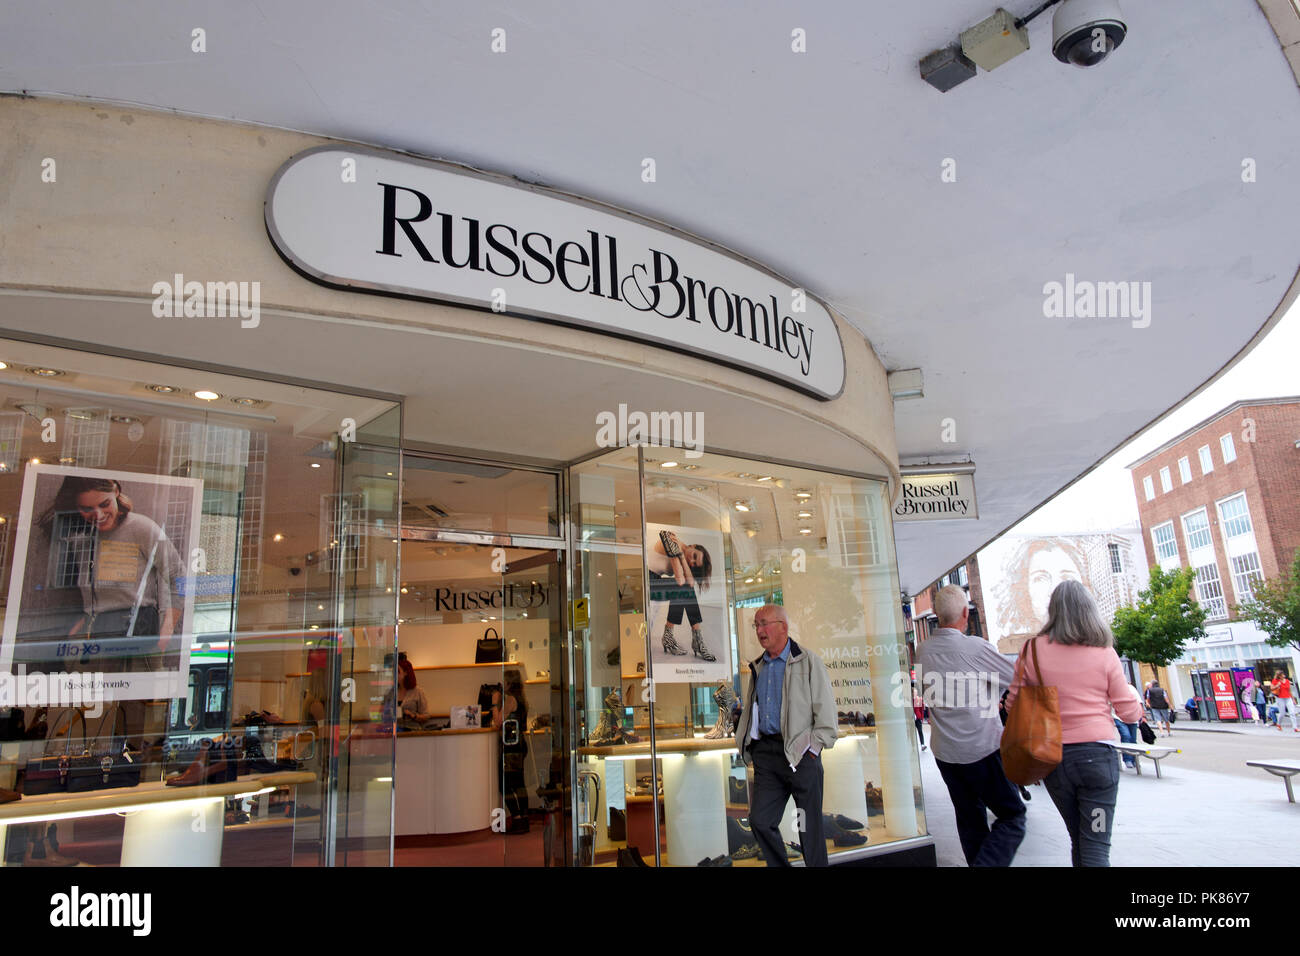 Russell & Bromley store - Stock Image